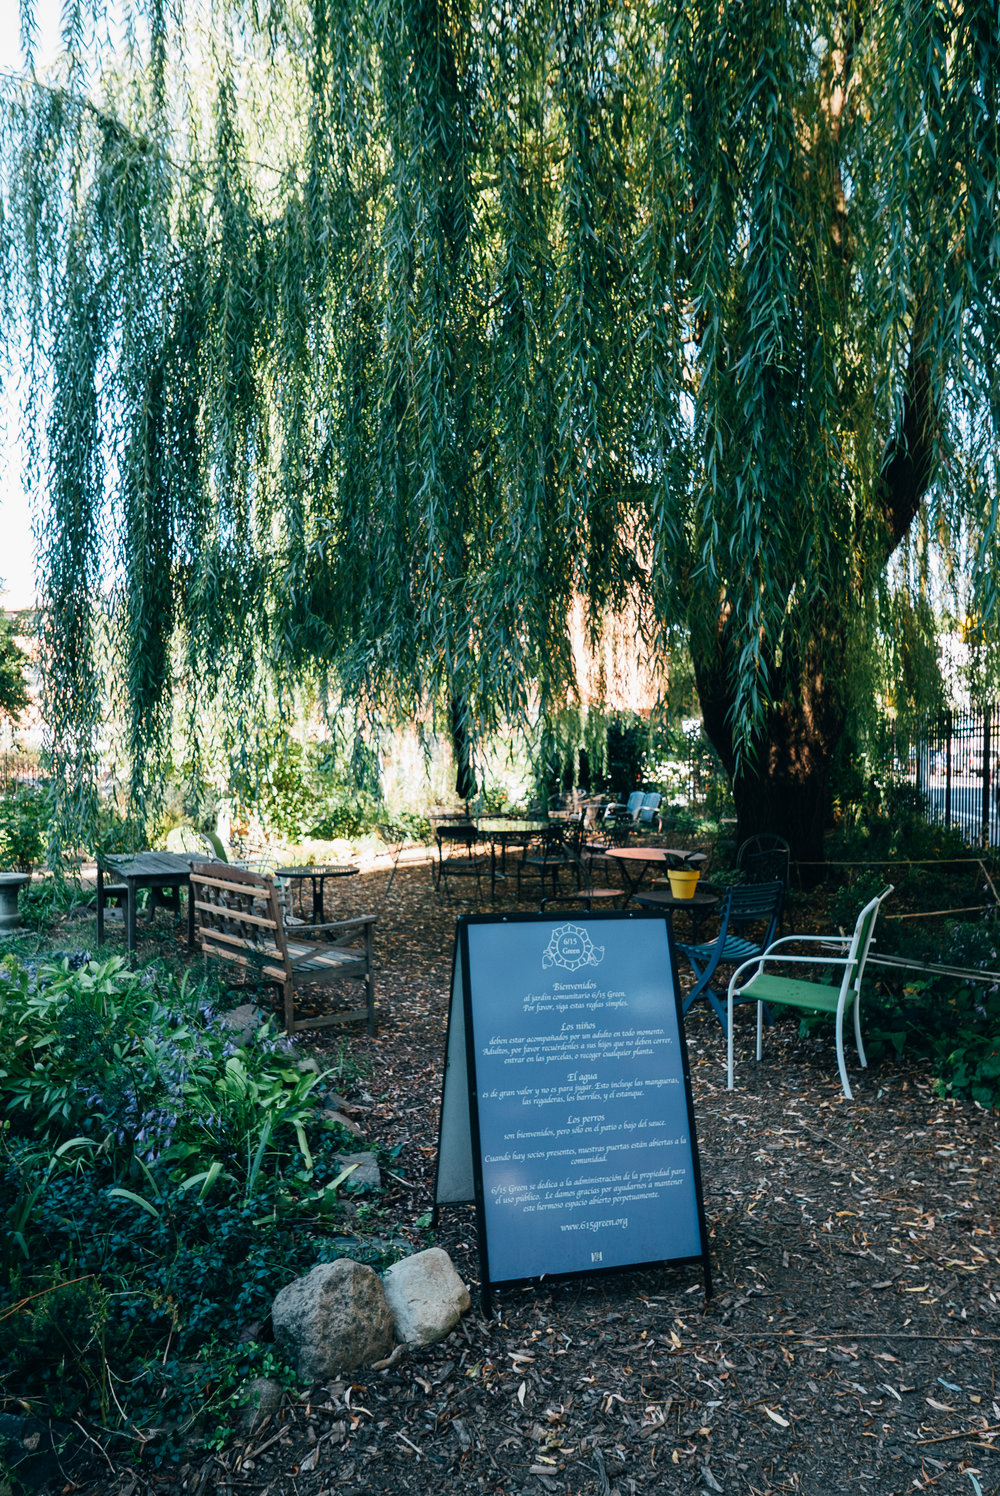 Weeping Willow tree with nice shady seating underneath.